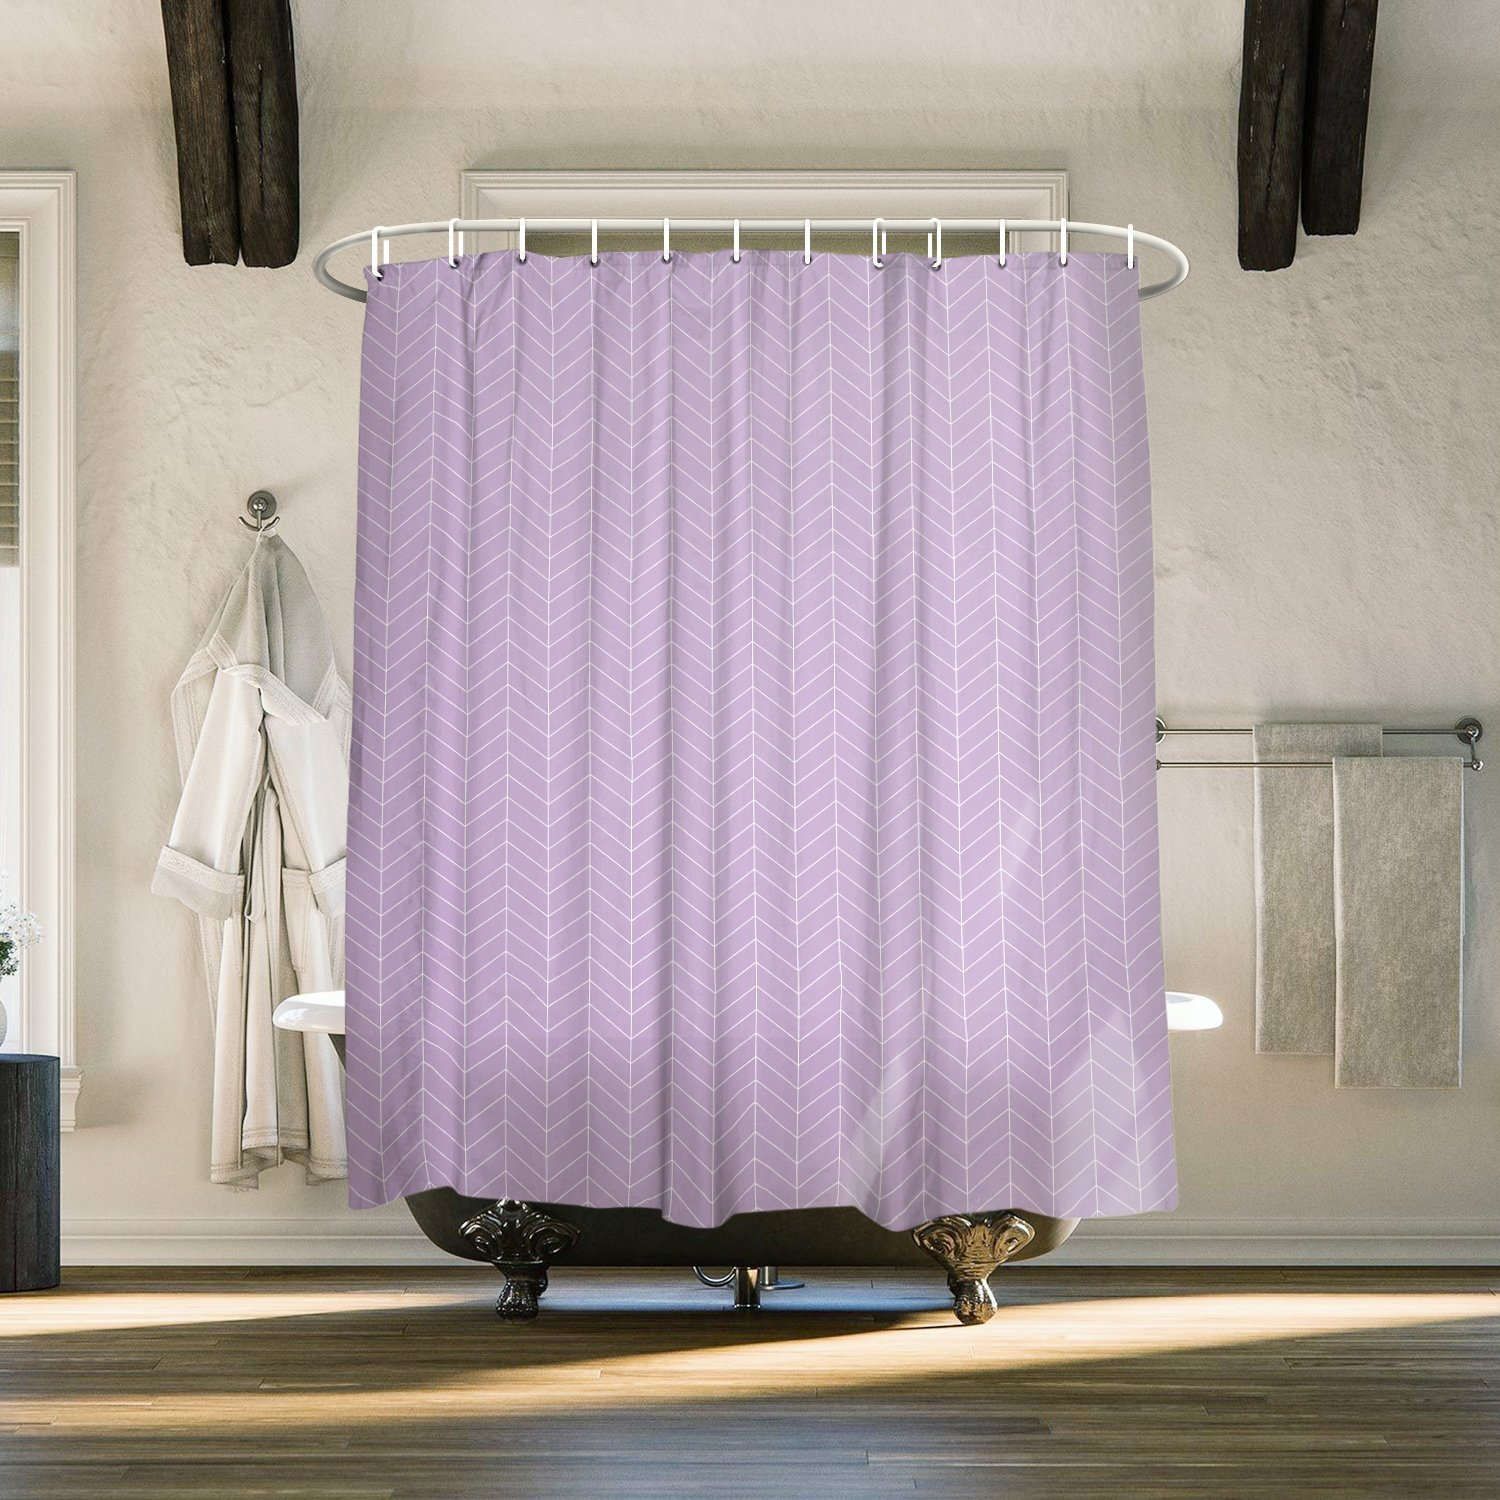 Long Shower Curtain Us 18 87 30 Off Grey Stripe Natural Herringbone 84 Inch Extra Long Shower Curtains Fabric Polyester Bathroom Curtains With Hooks In Shower Curtains